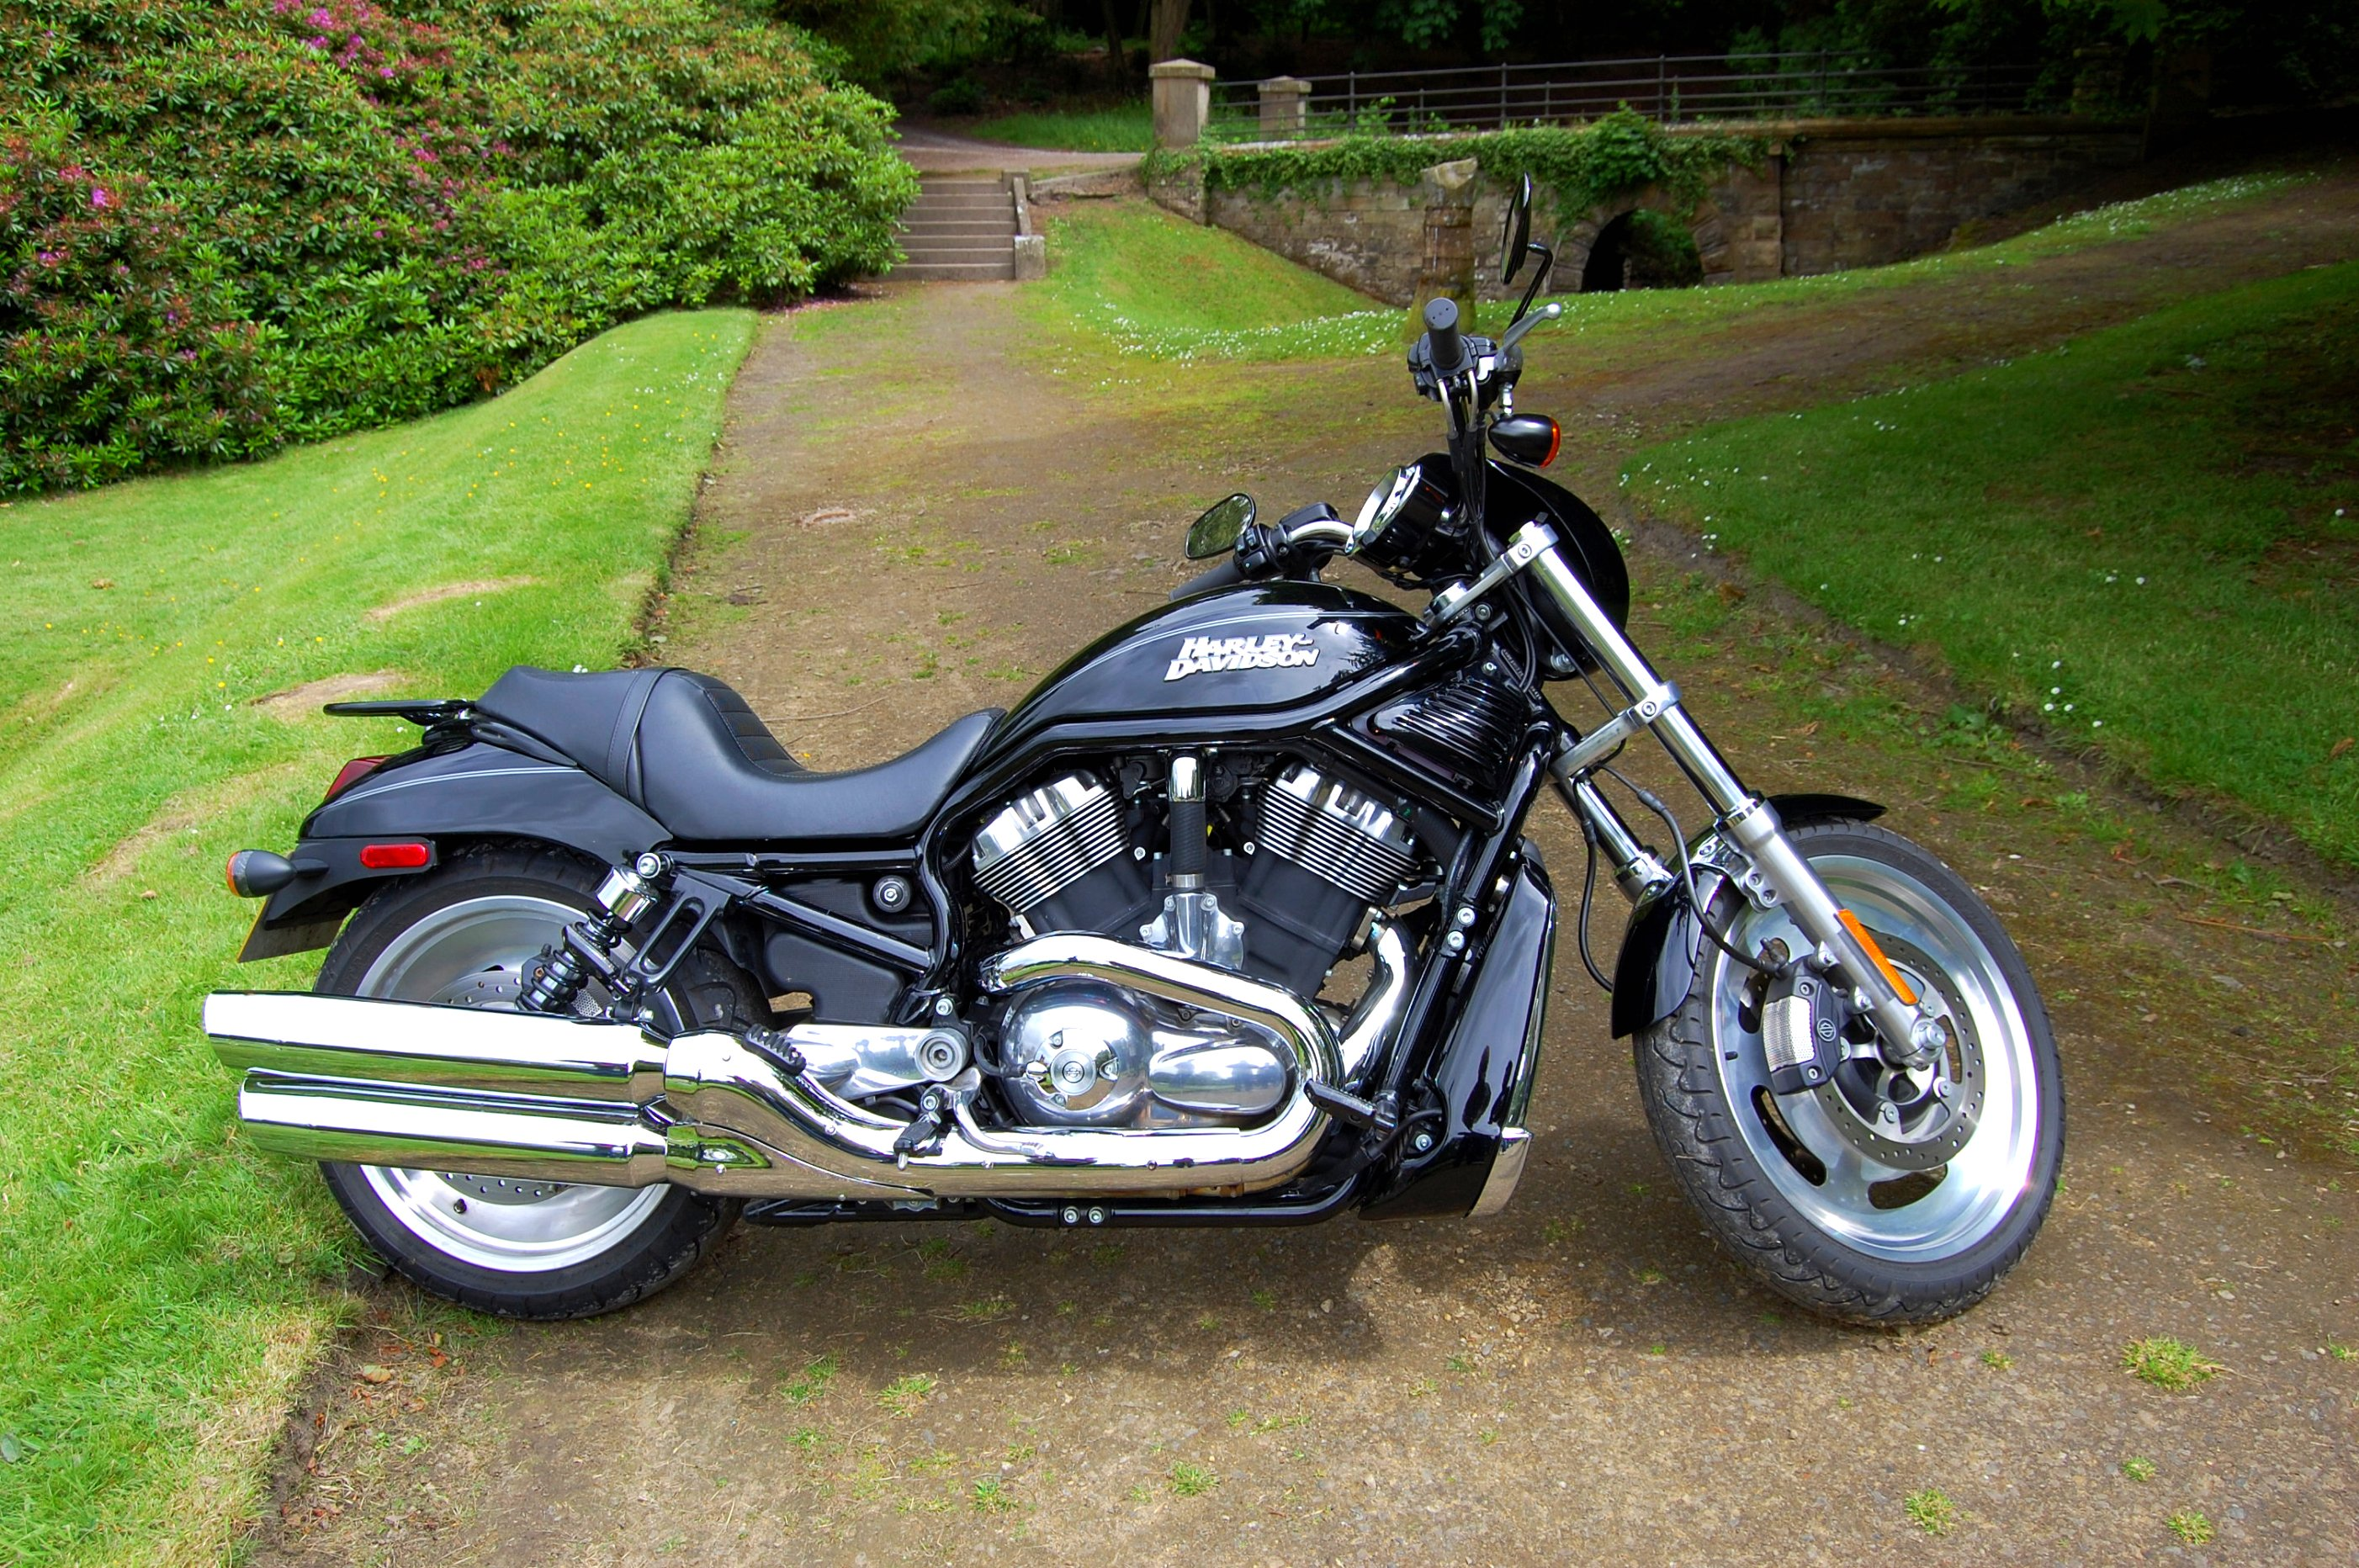 File:Flickr - ronsaunders47 - HARLEY- DAVIDSON. VRSC 1250 CC. V TWIN